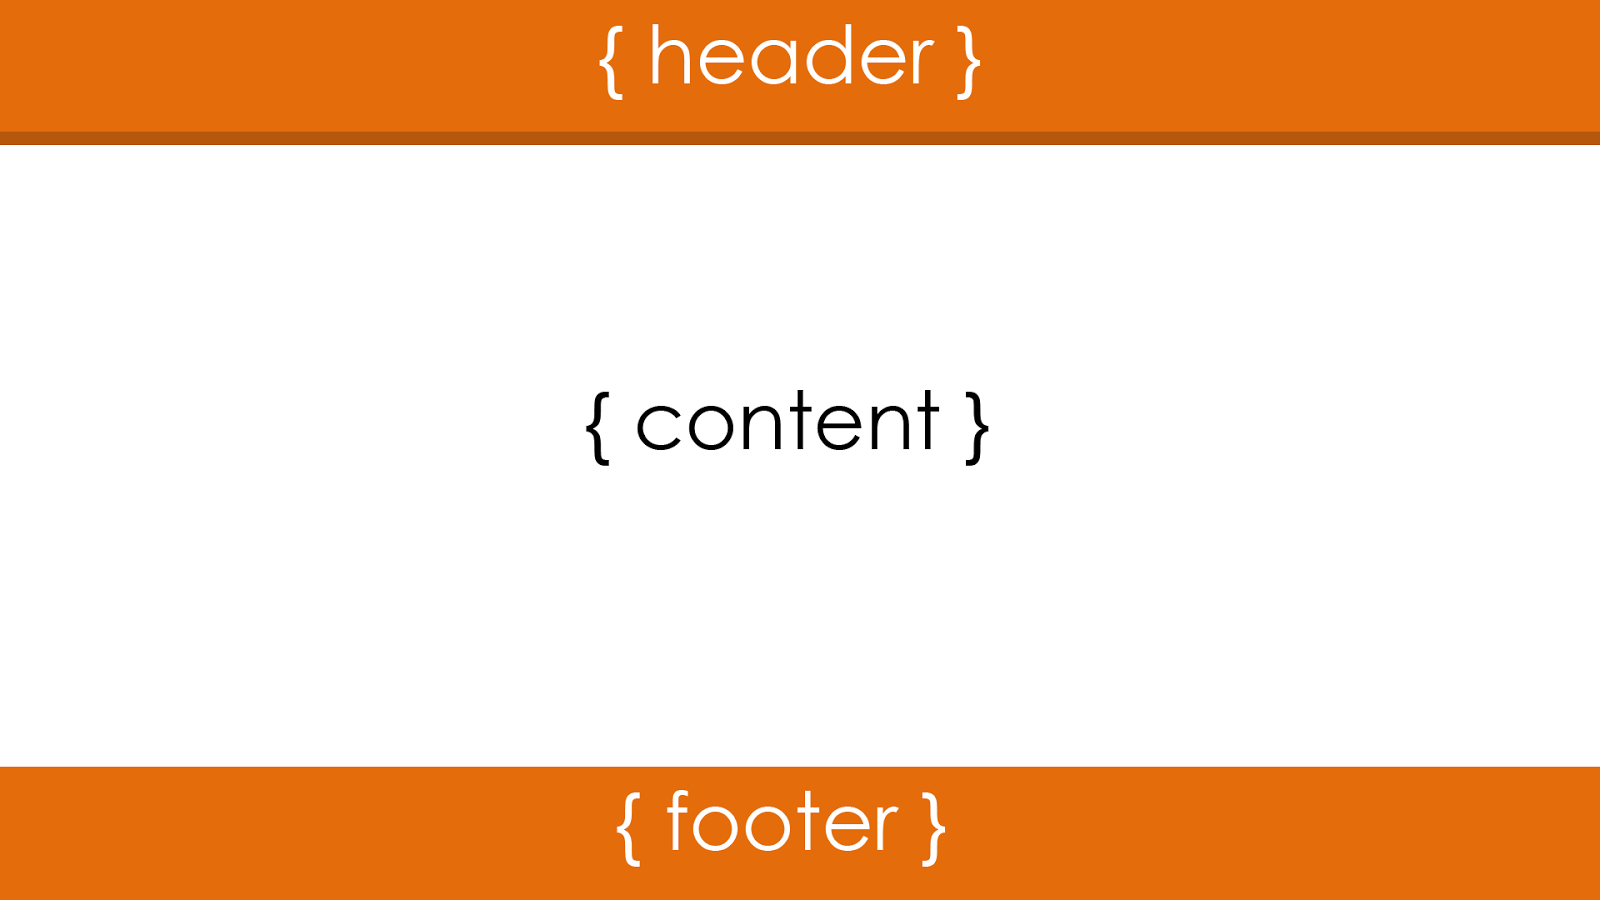 Css position footer at bottom